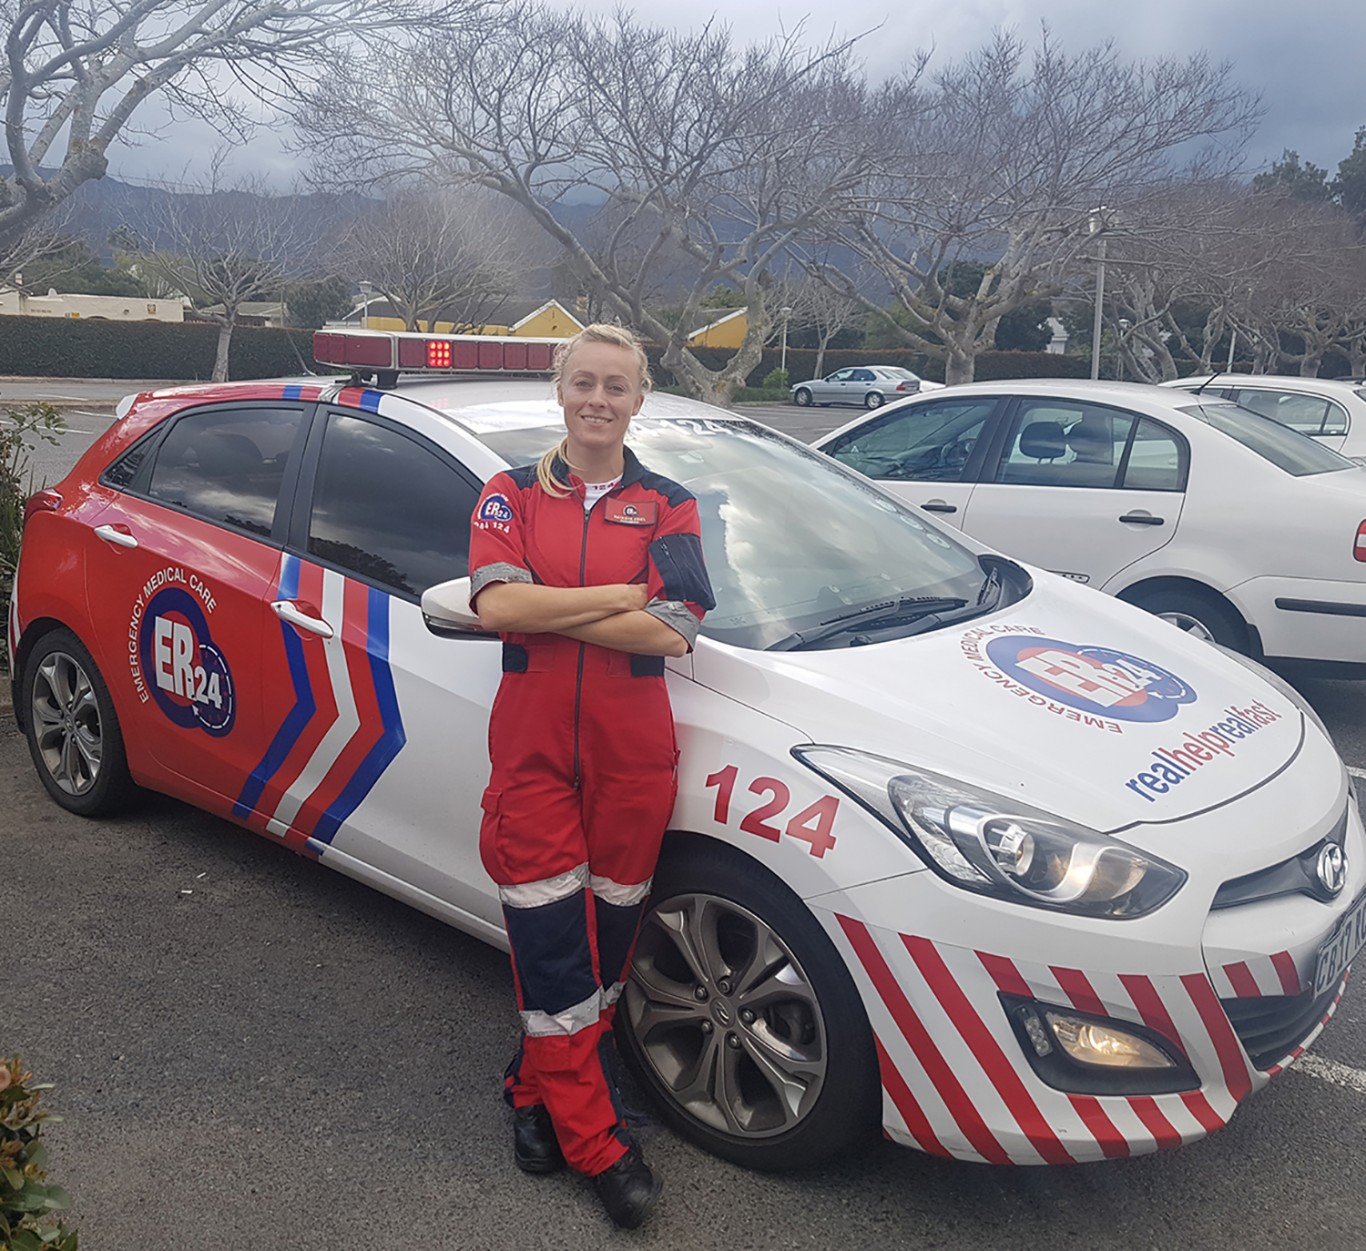 Natasha Kriel, dedicated to saving lives whether out on the roads as an operational paramedic or at the ocean.